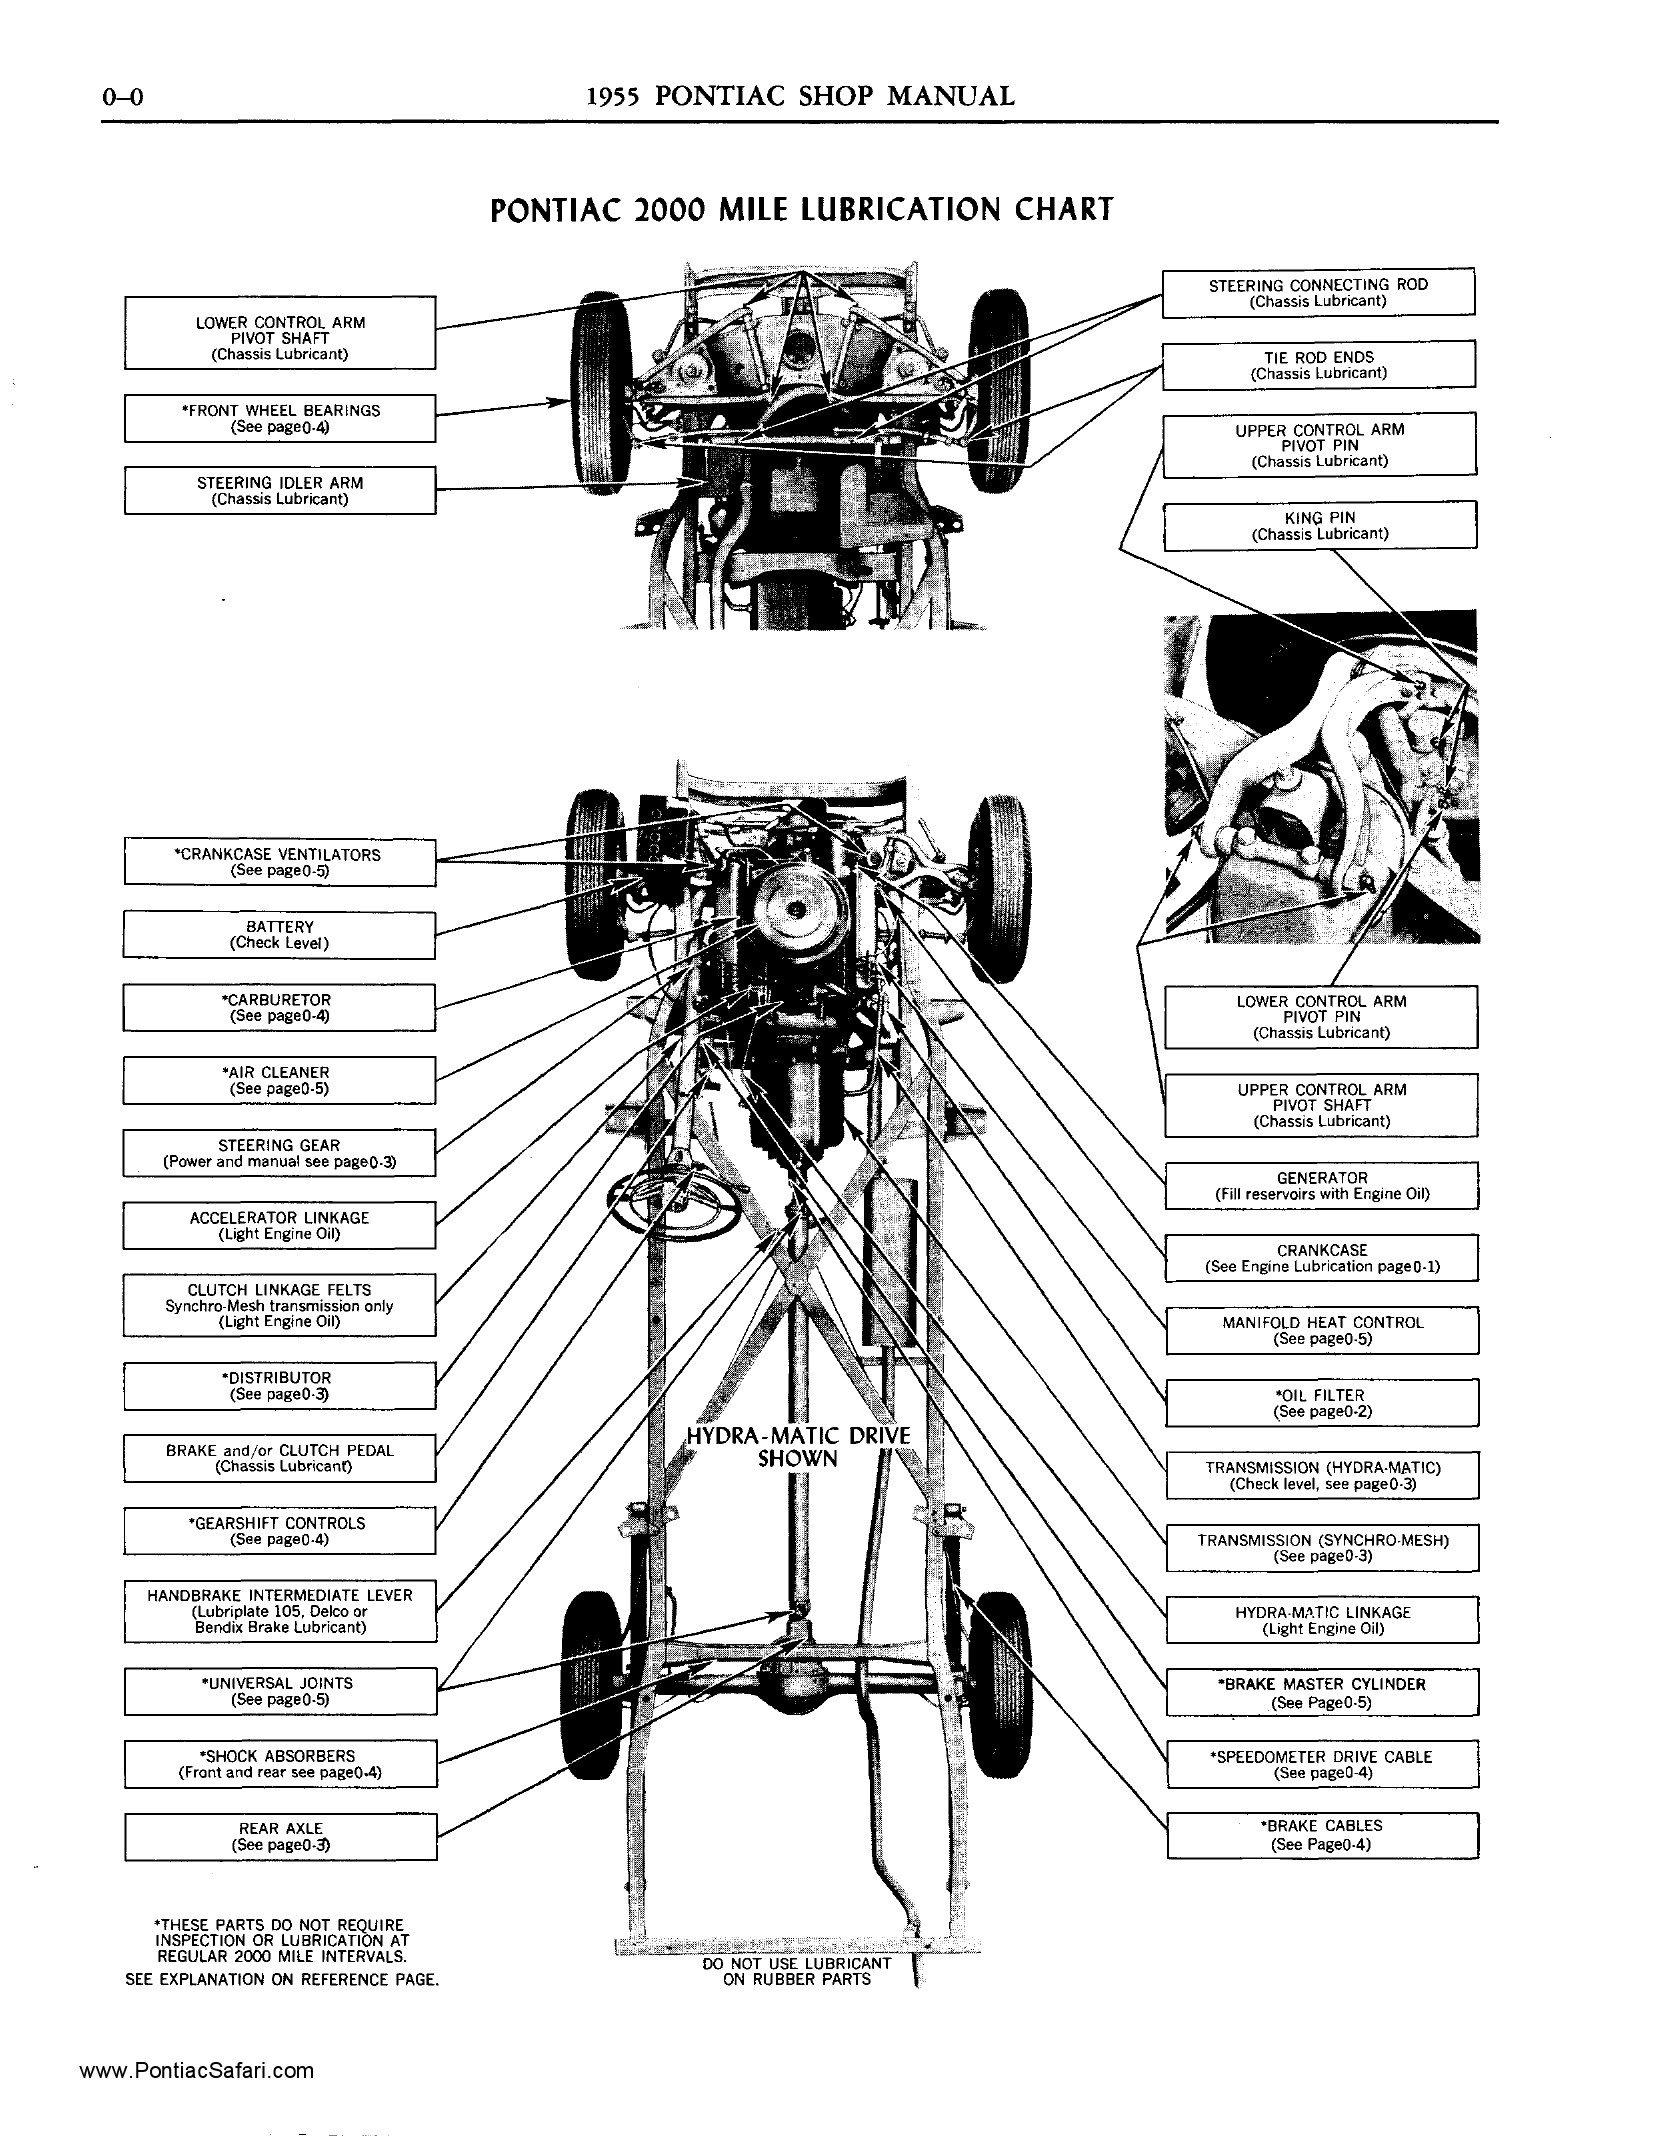 1955 Pontiac Shop Manual- Lubrication Page 1 of 8